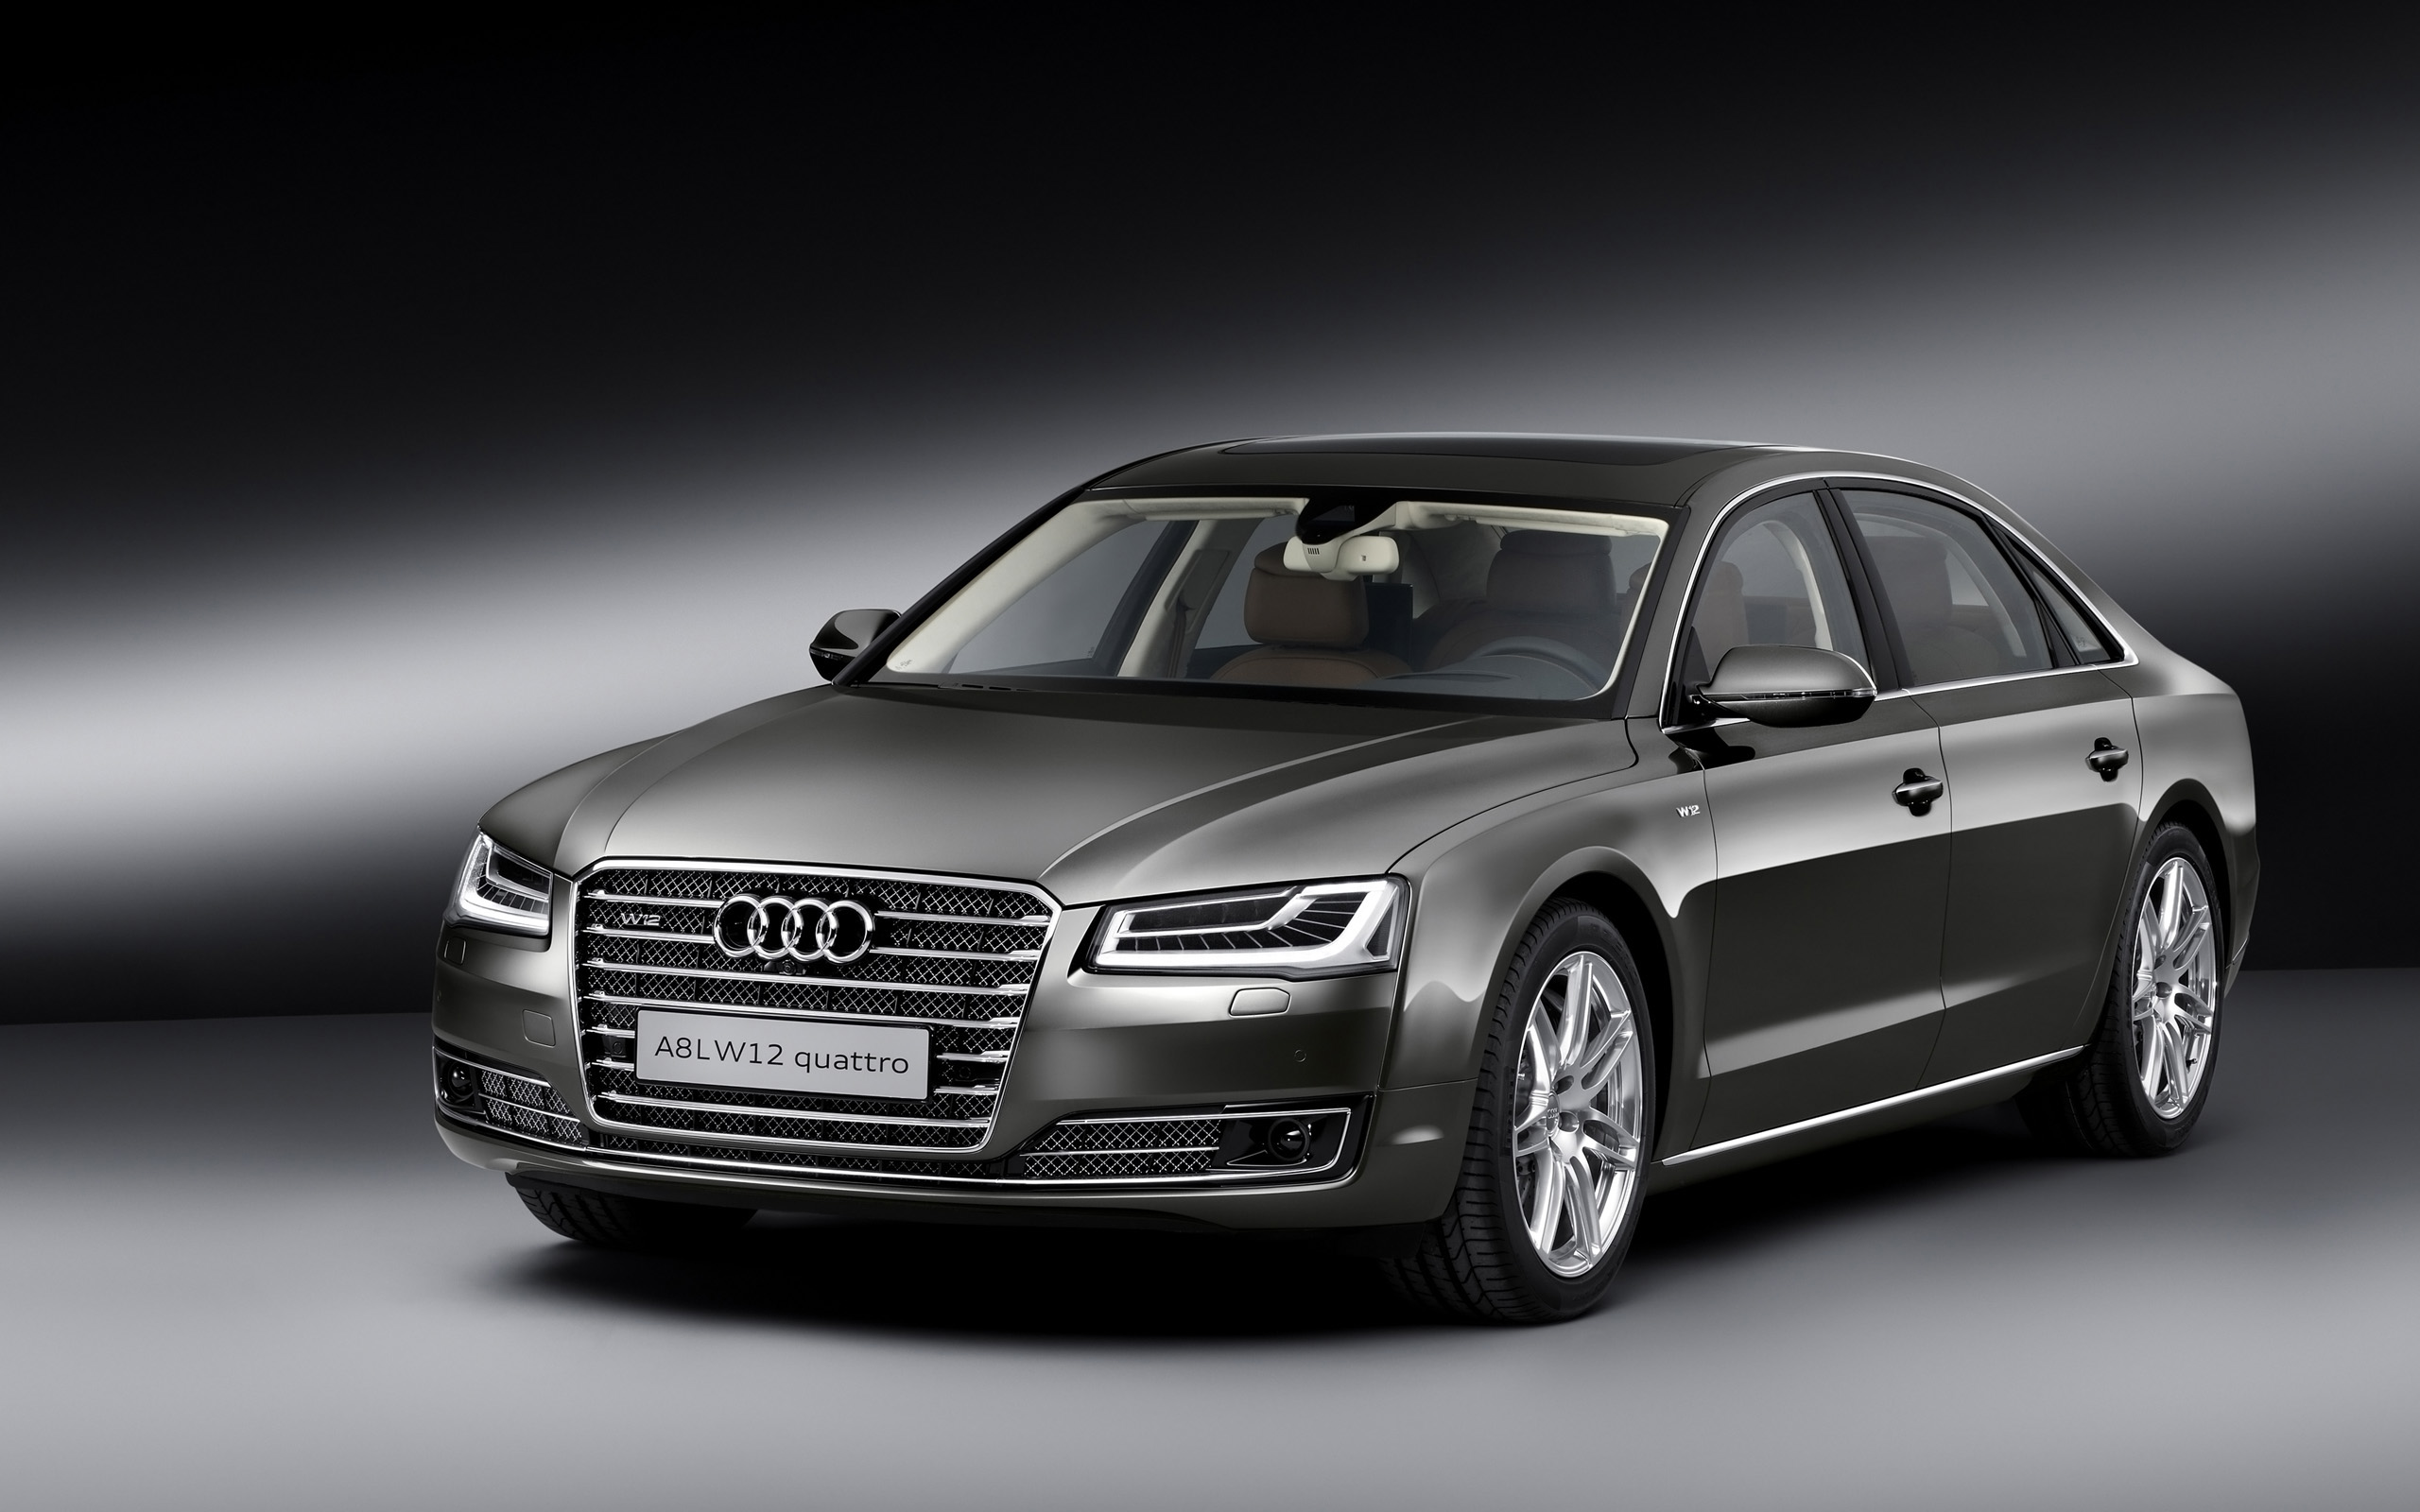 audi a8 l w12 exclusive 2014 wallpaper hd car wallpapers id 4095. Black Bedroom Furniture Sets. Home Design Ideas